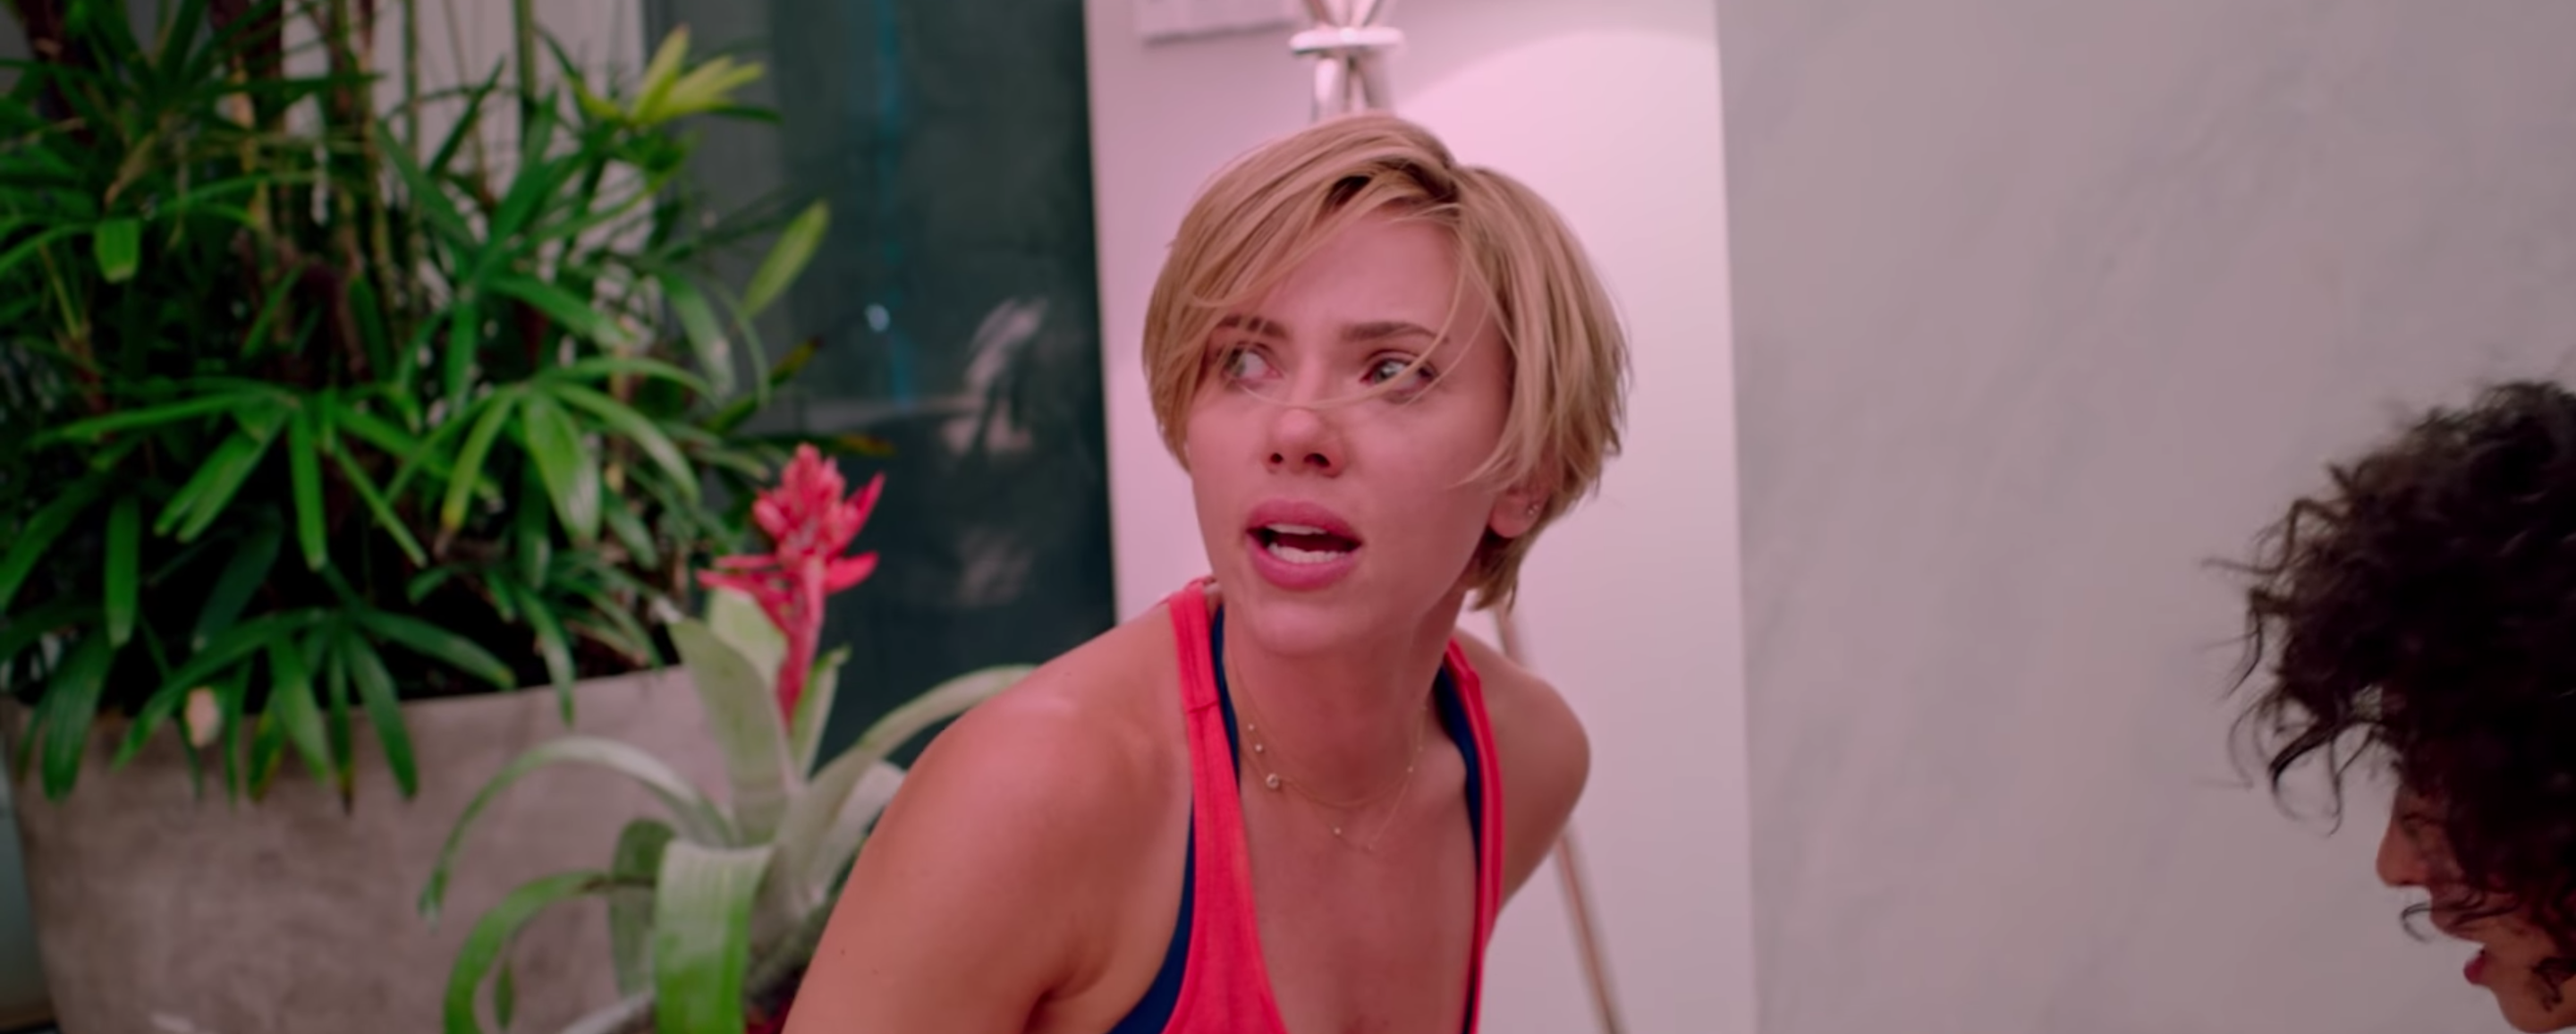 Scarlett Johansson and SNL's Kate McKinnon have a VERY Rough Night in this hilarious teaser